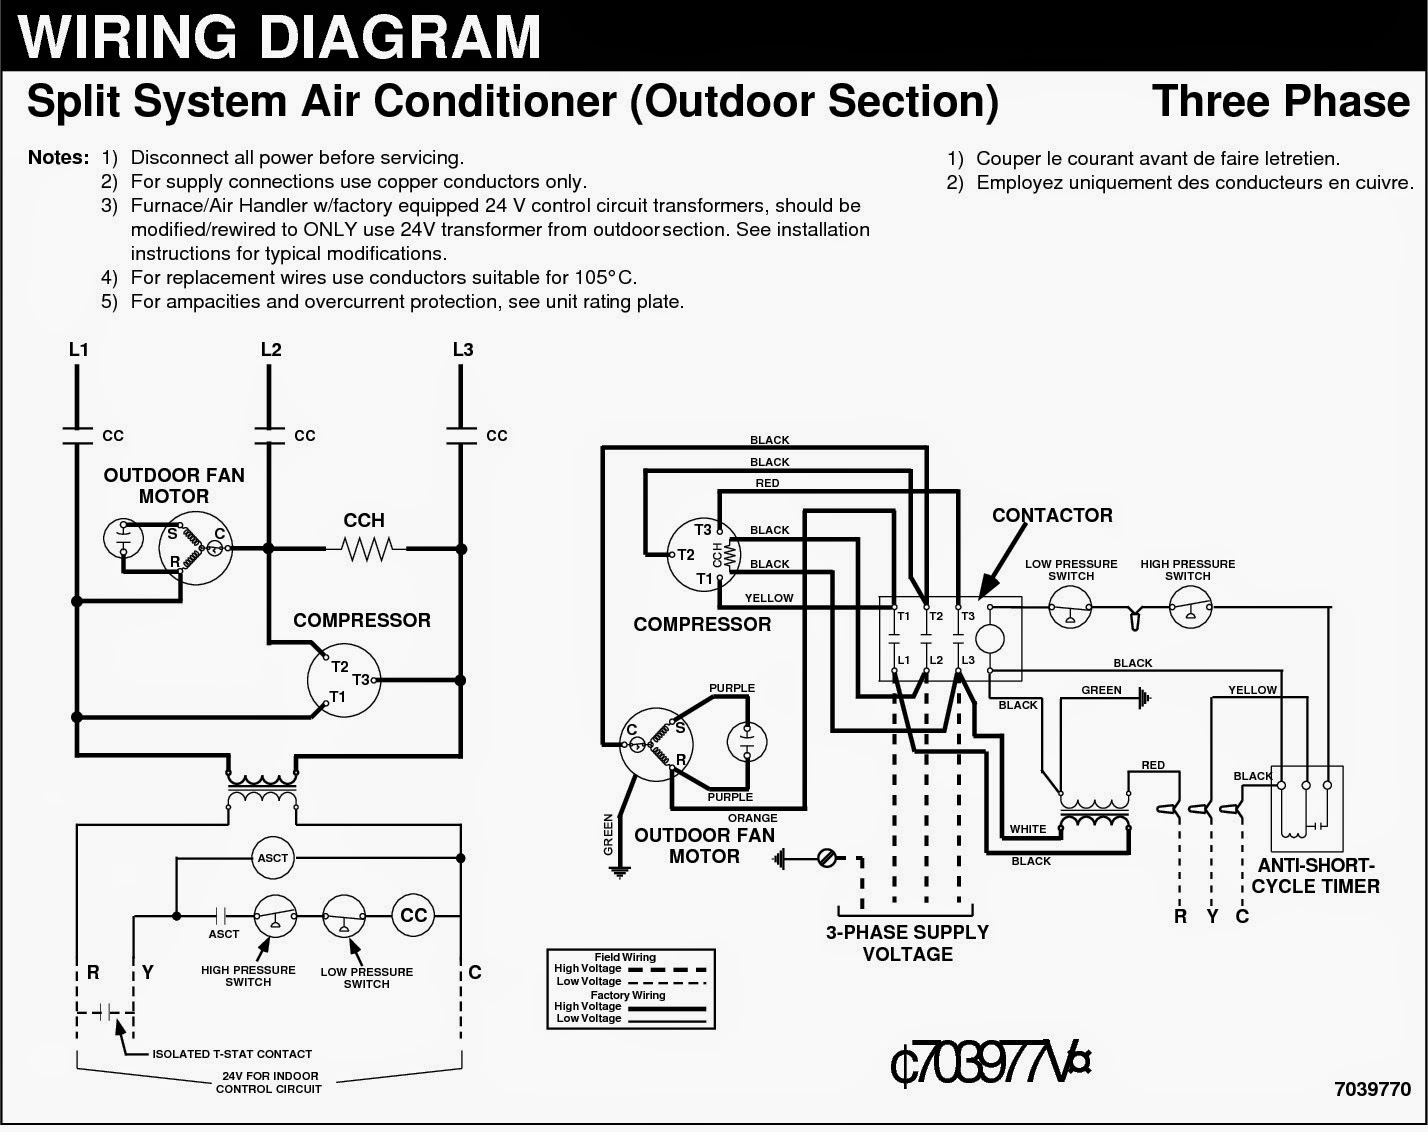 3+phase ac wiring diagram subaru ac wiring diagram \u2022 wiring diagrams j split type aircon wiring diagram at mr168.co